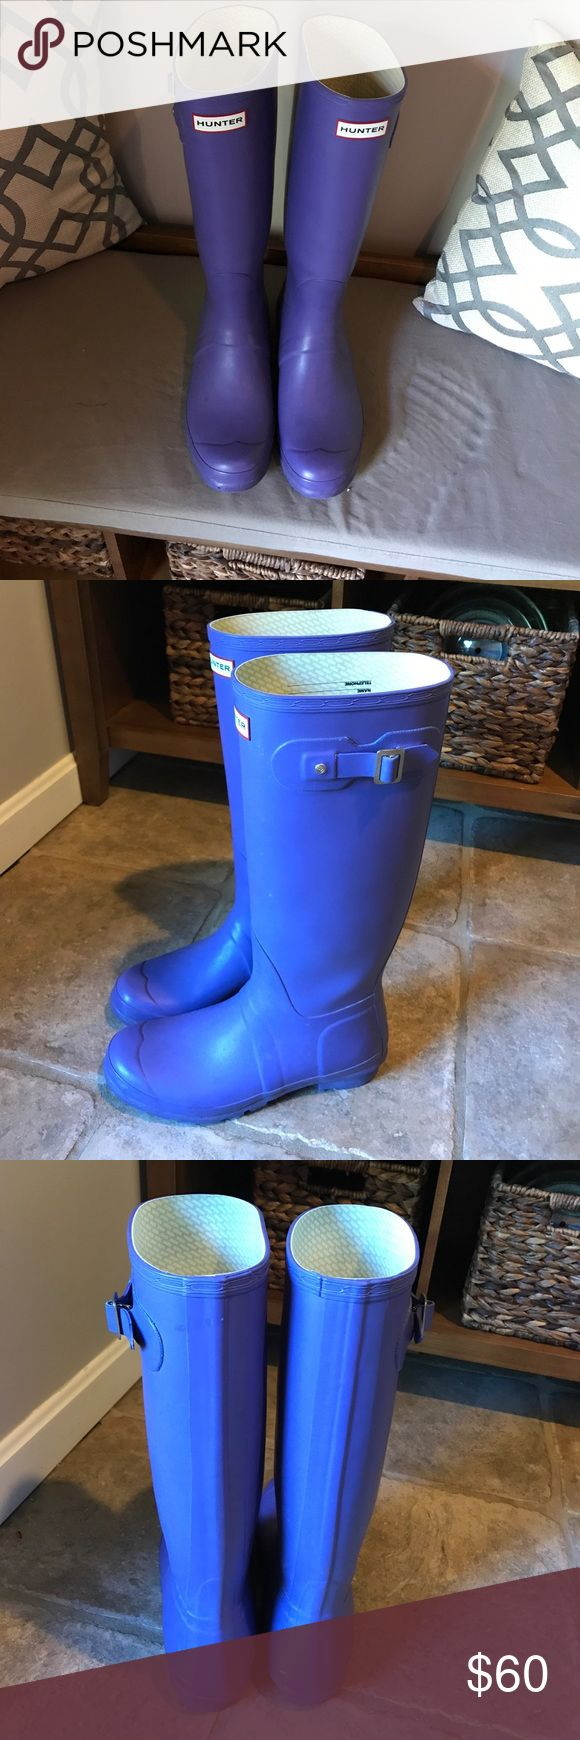 Size 10 tall Hunter rain boots in purple lilac Gently worn. In great condition Hunter Boots Shoes Winter & Rain Boots